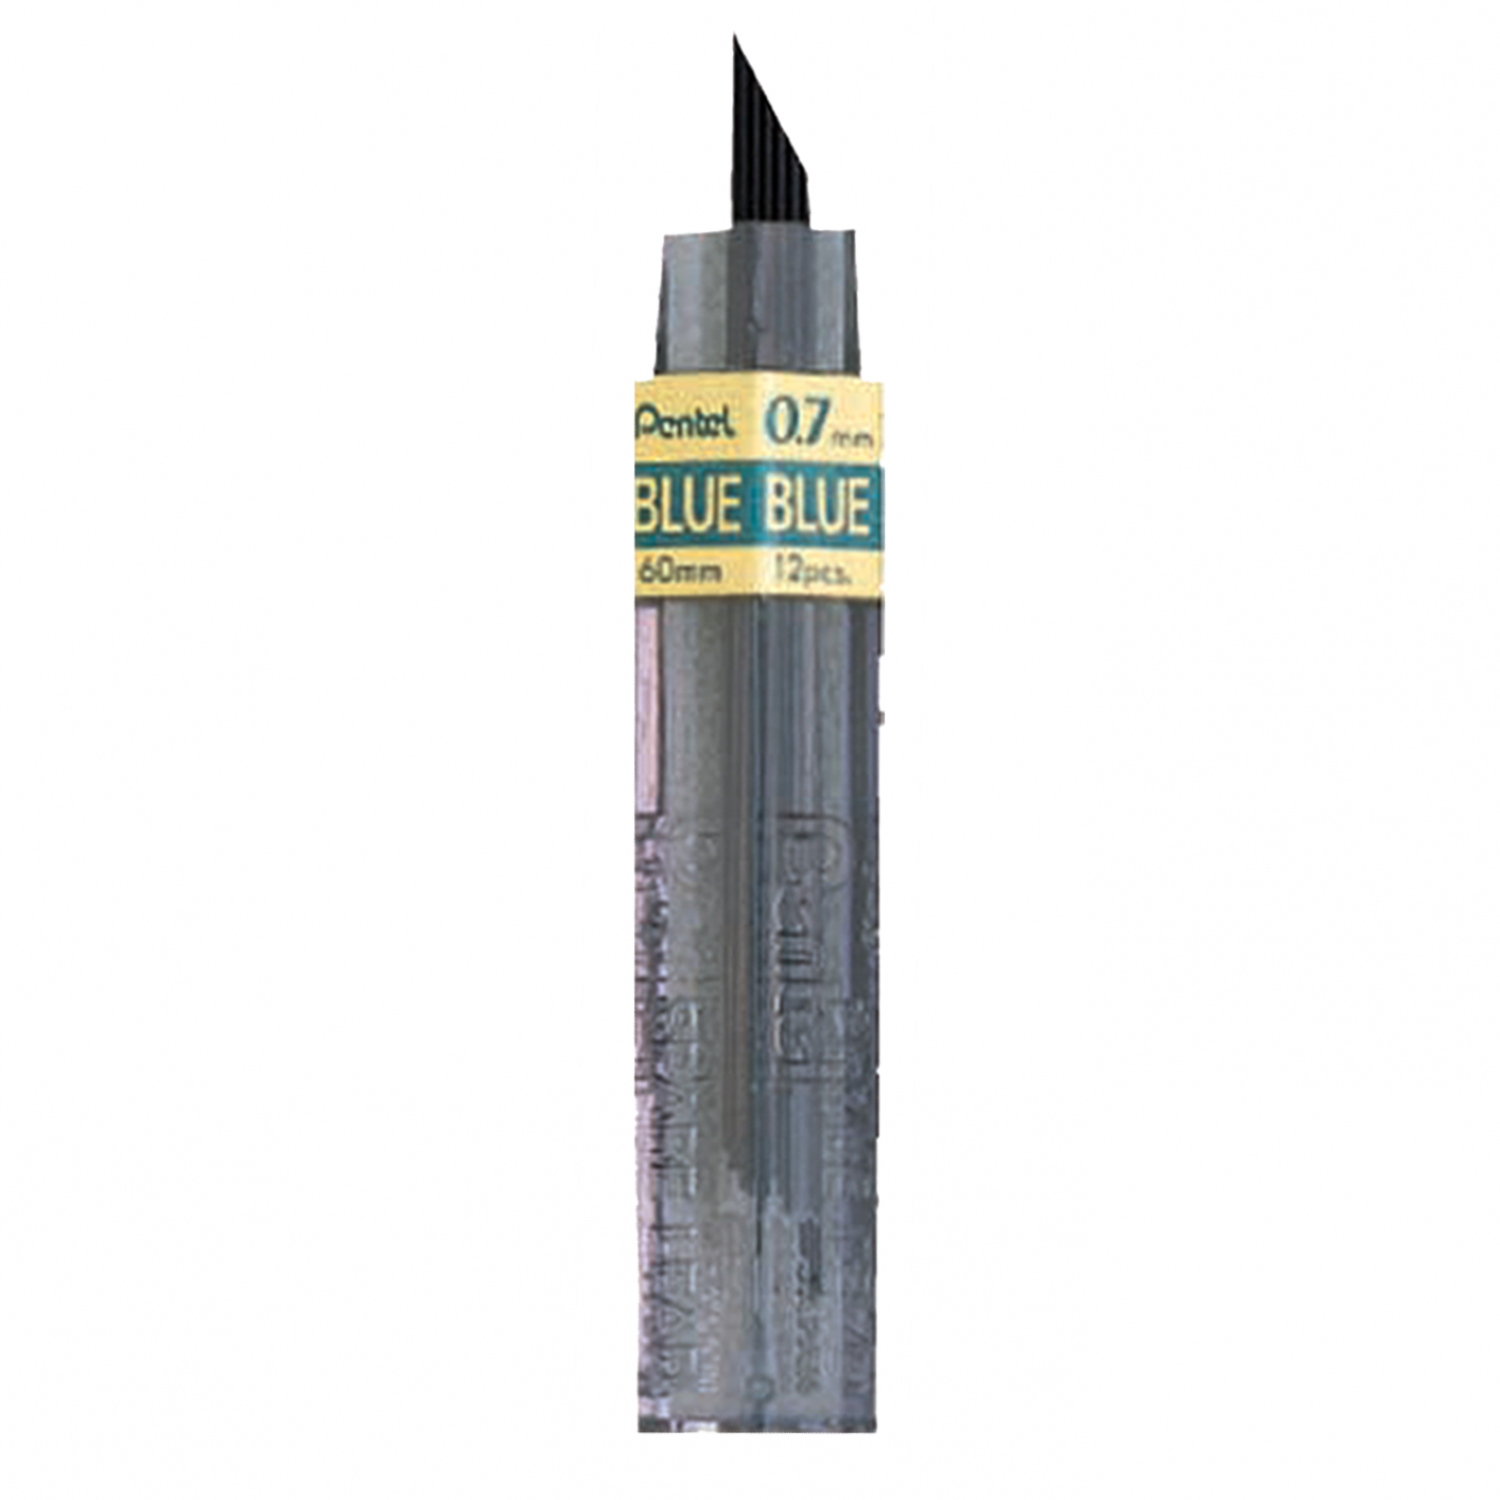 Pentel Colored Lead, 0.7mm Blue 12 Leads